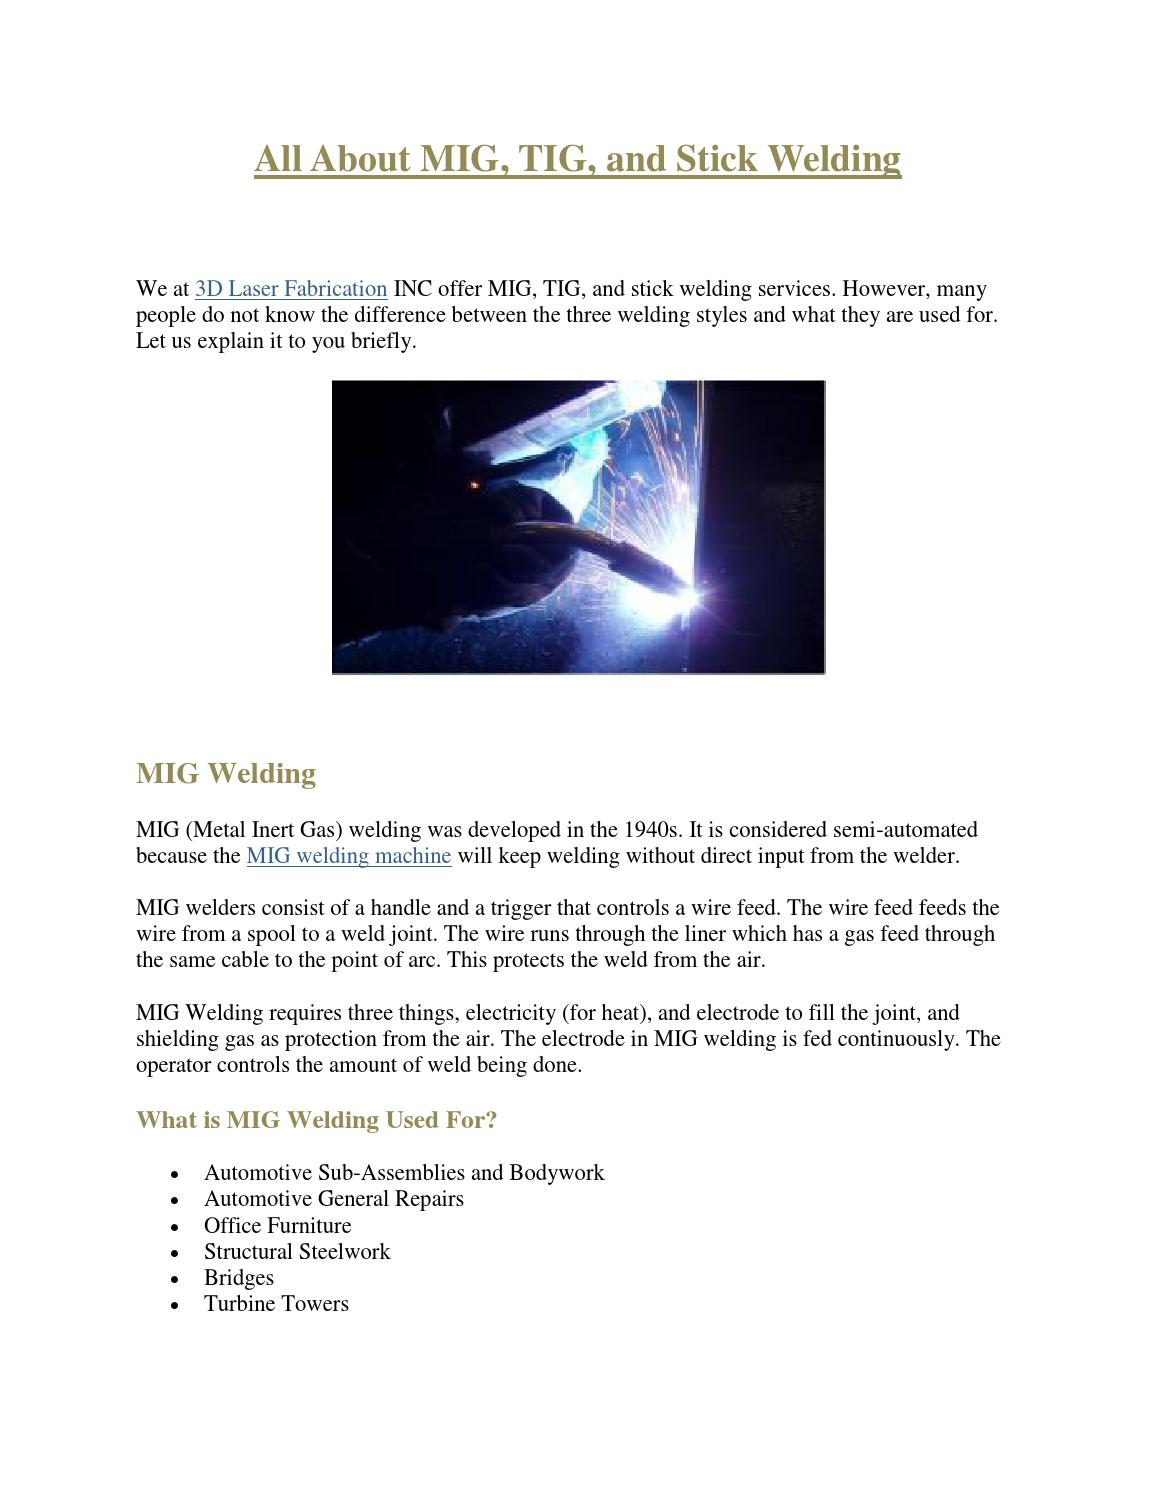 All About MIG, TIG, and Stick Welding by LaserFabrication